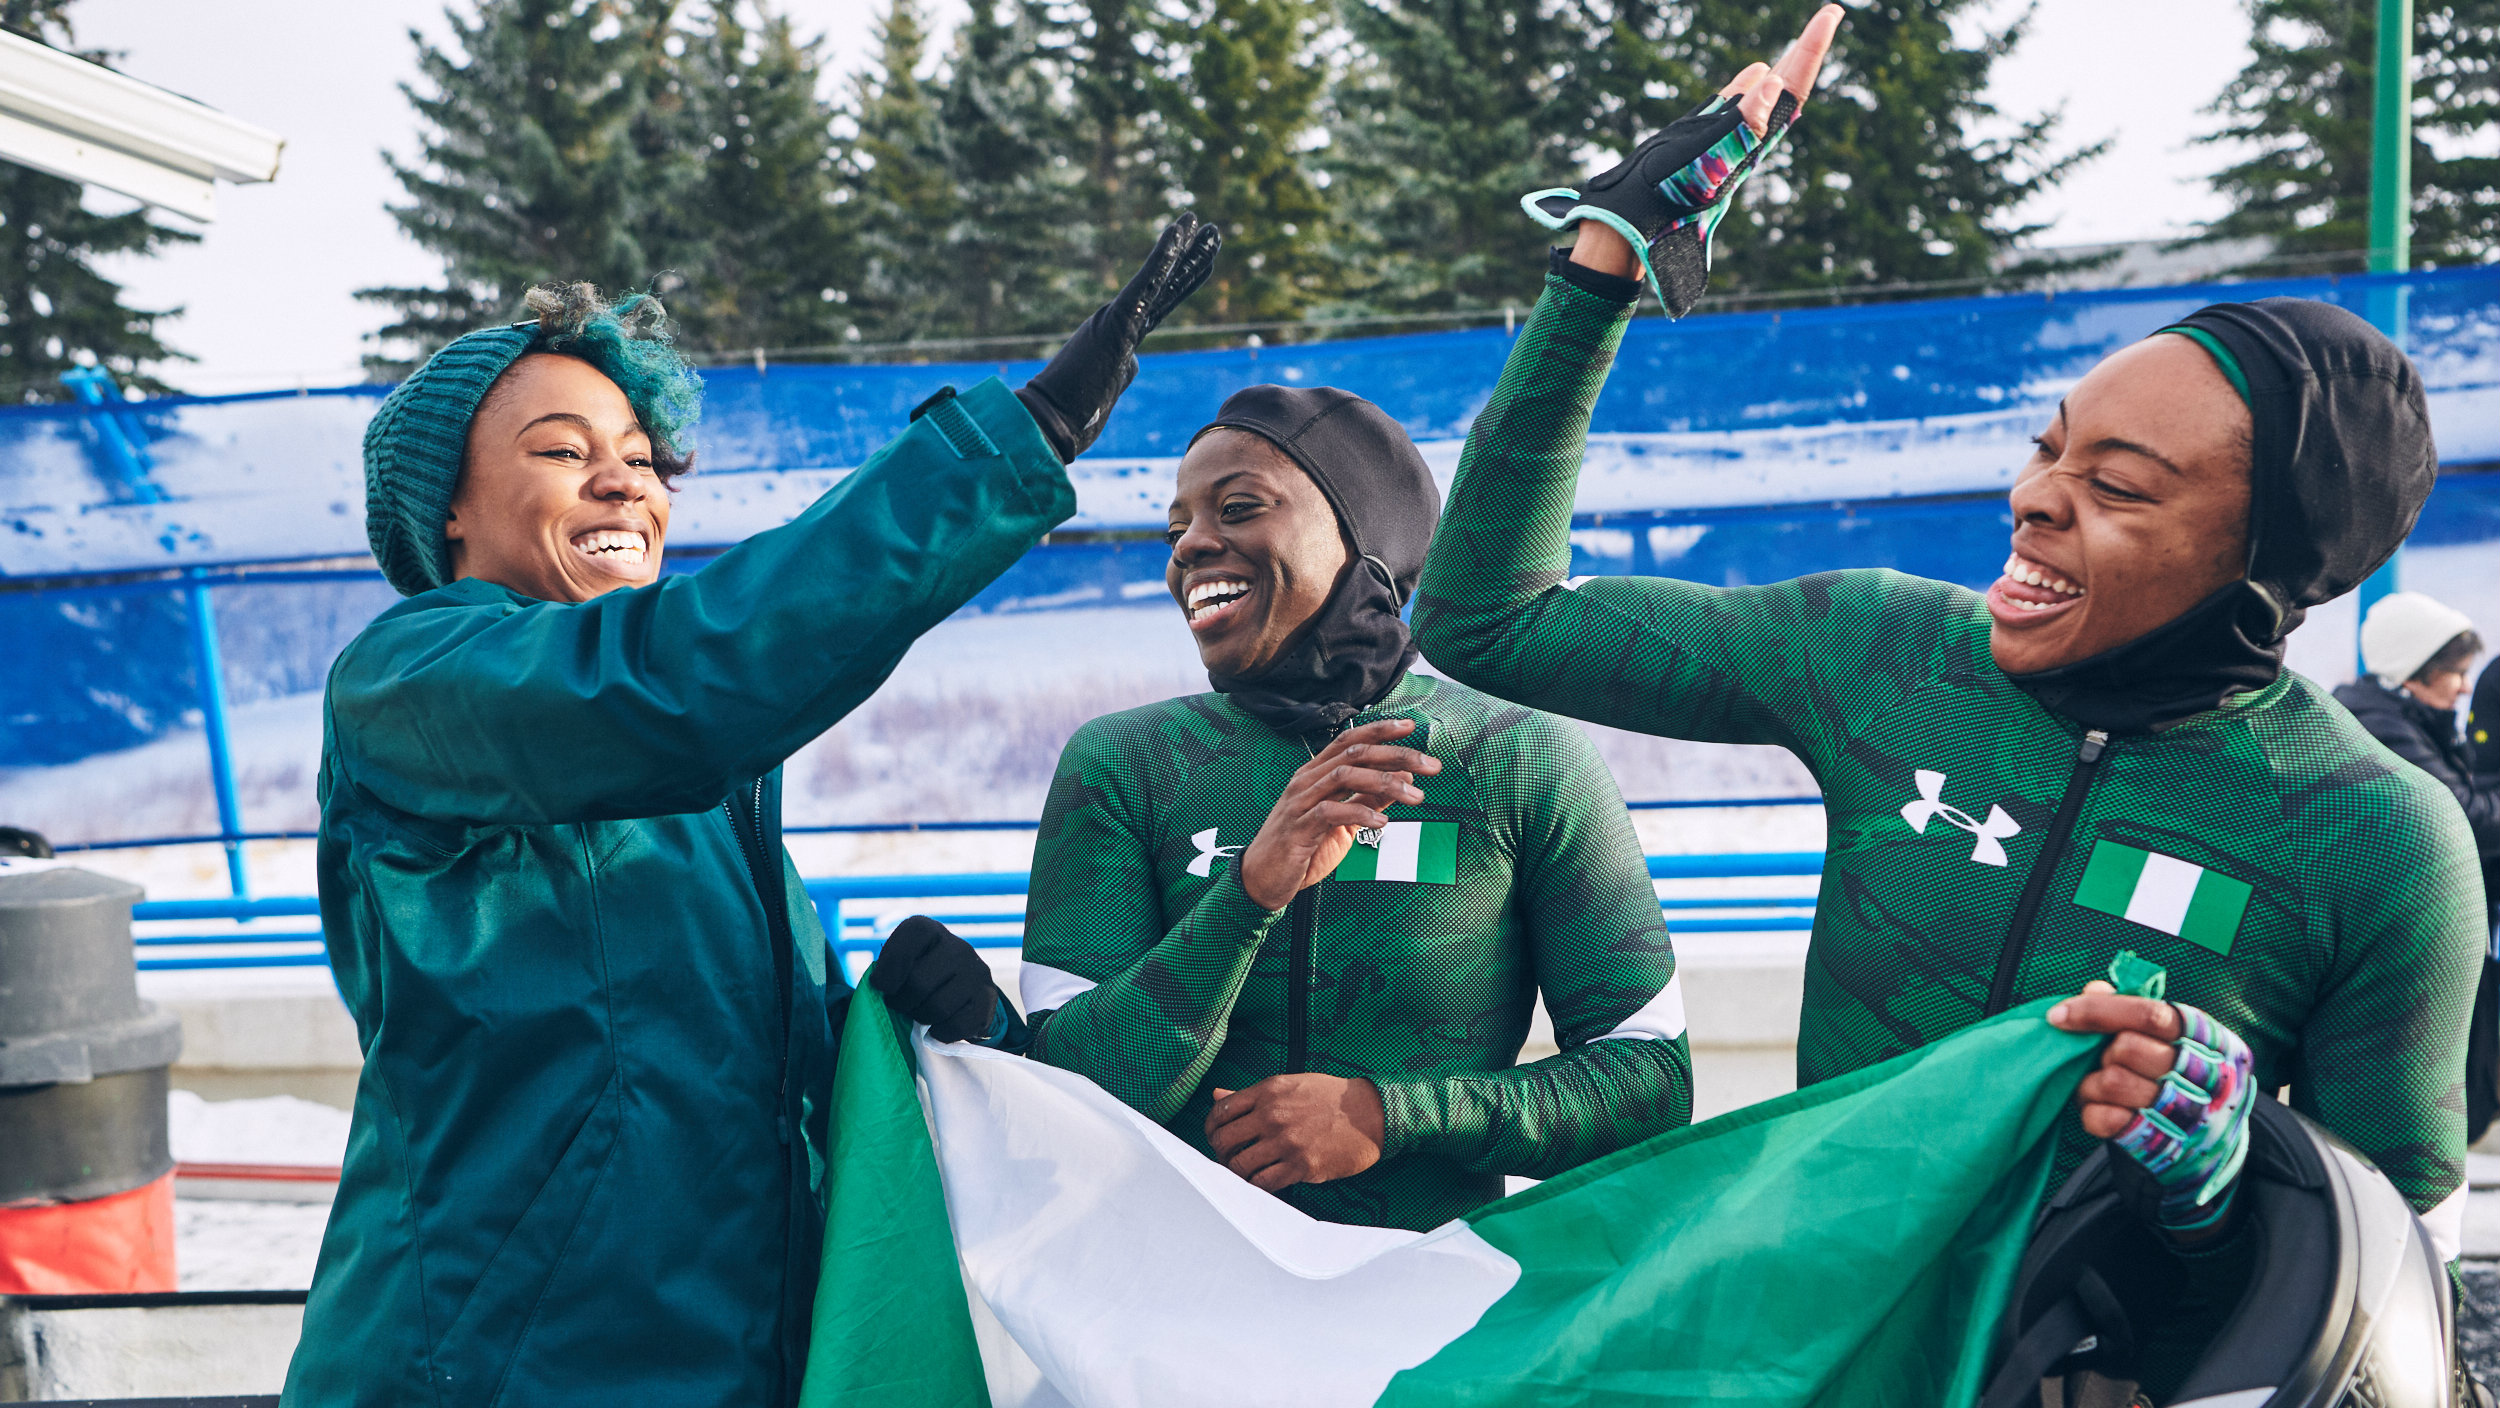 Nigeria's bobsled team comprising of Seun Adigun, the team driver and leader, Akuoma Omeoga and Ngozi Onwumere